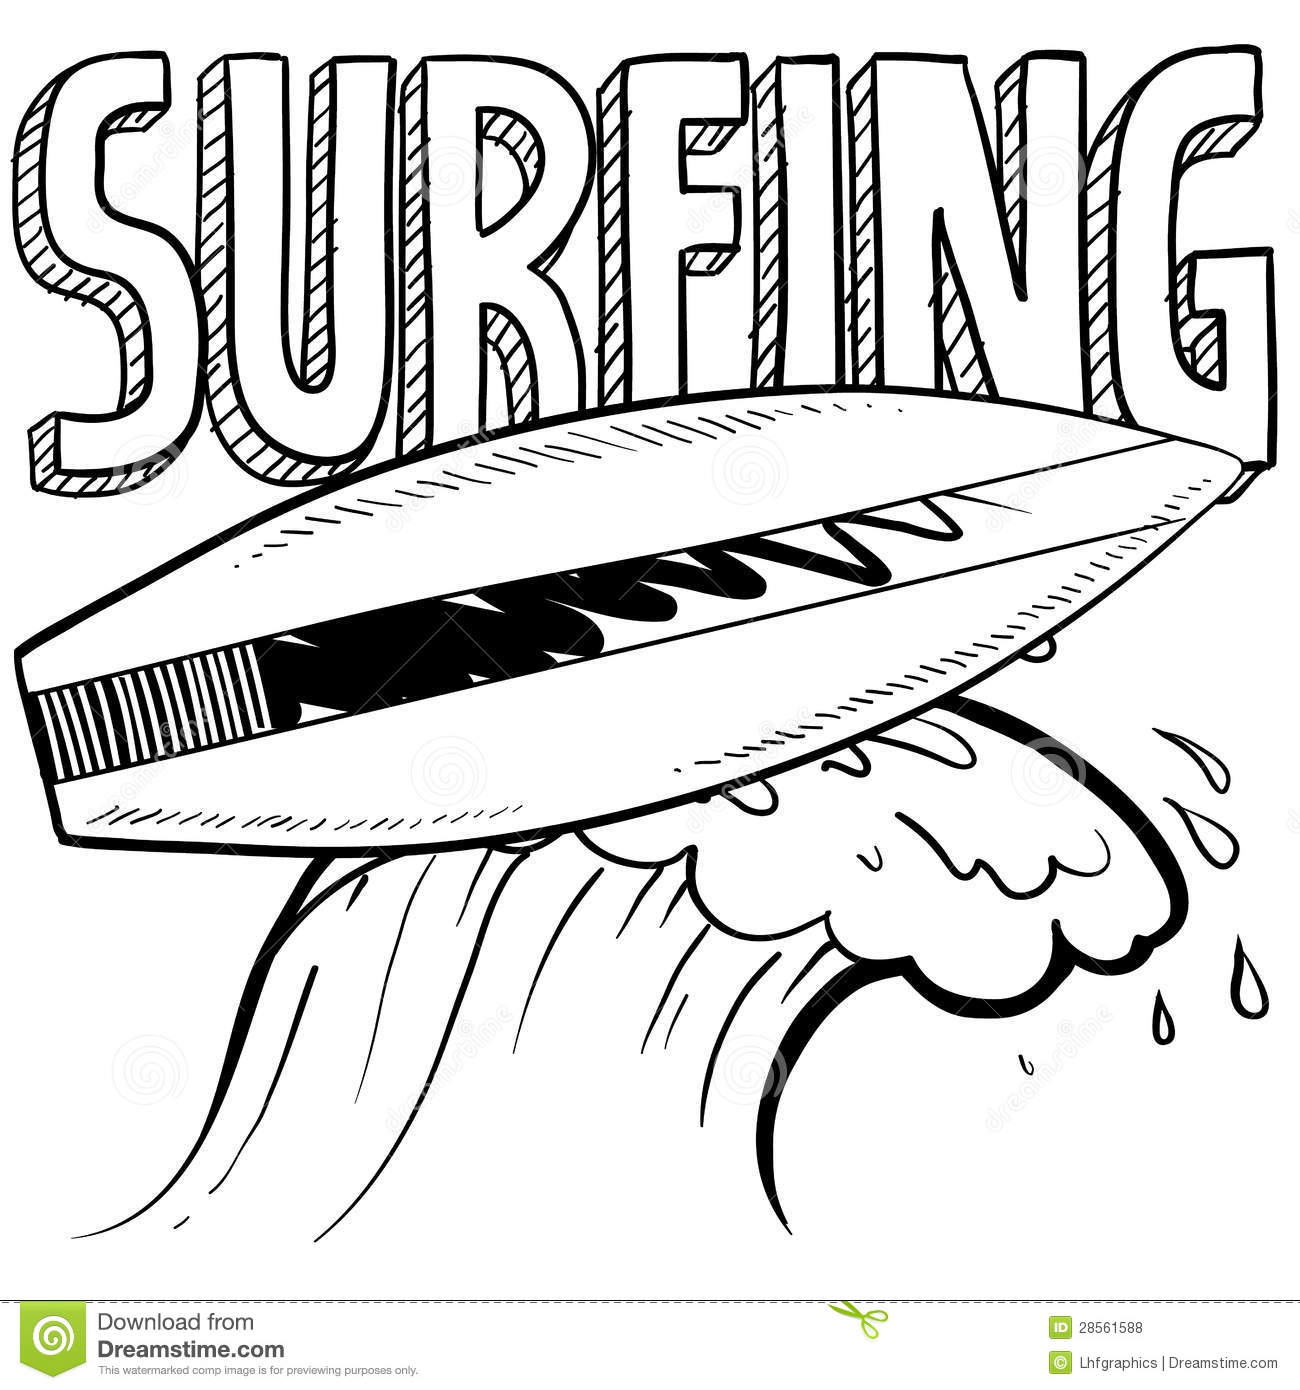 Surfing Sketch Royalty Free Stock Photos